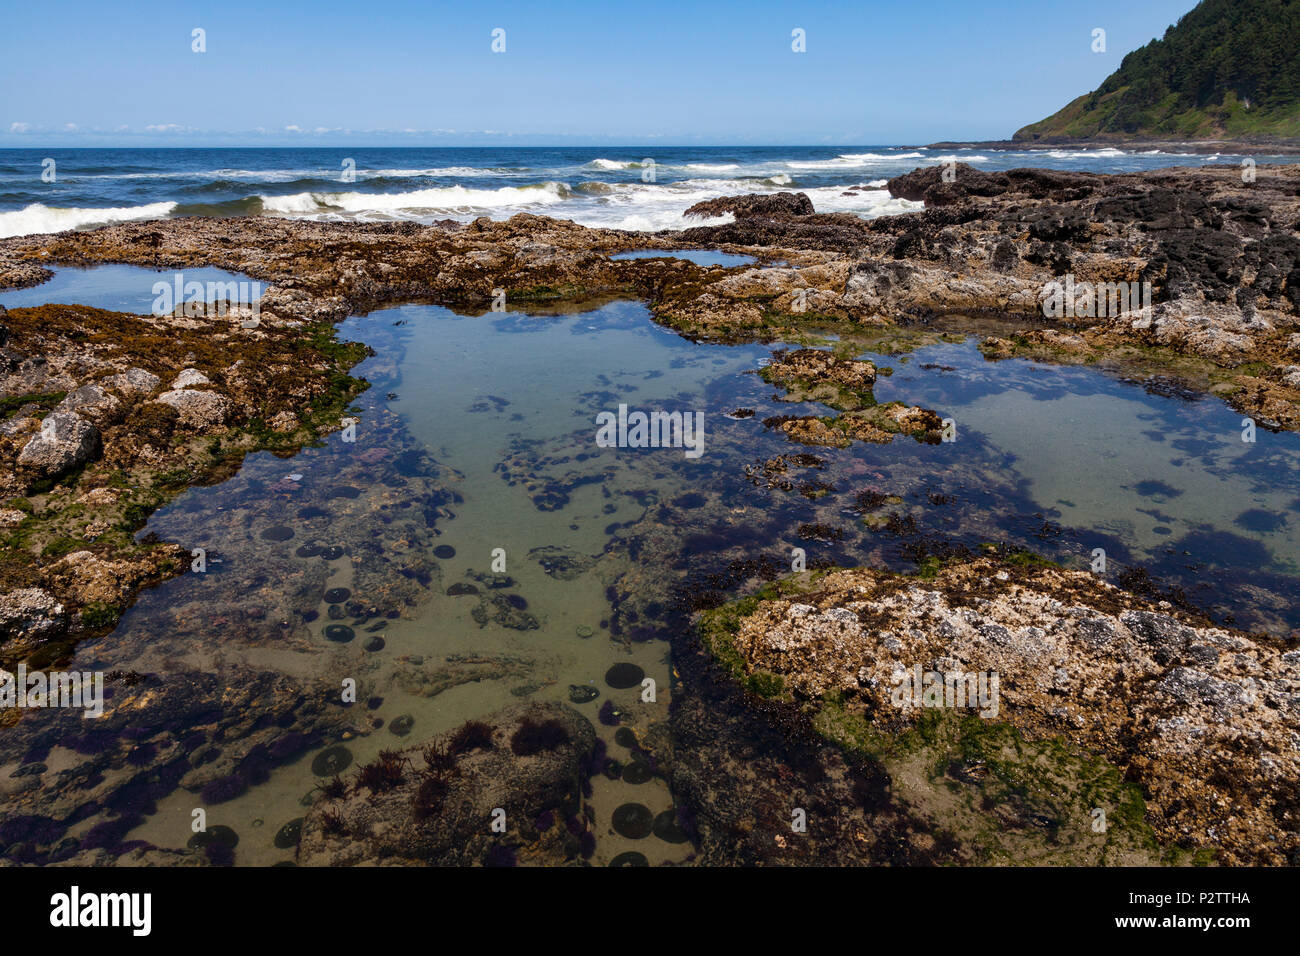 Low tide exposes the tidepools on the rugged lava flows at Cape Perpetua Scenic Area along Oregon's Central Coast south of Yachats. - Stock Image